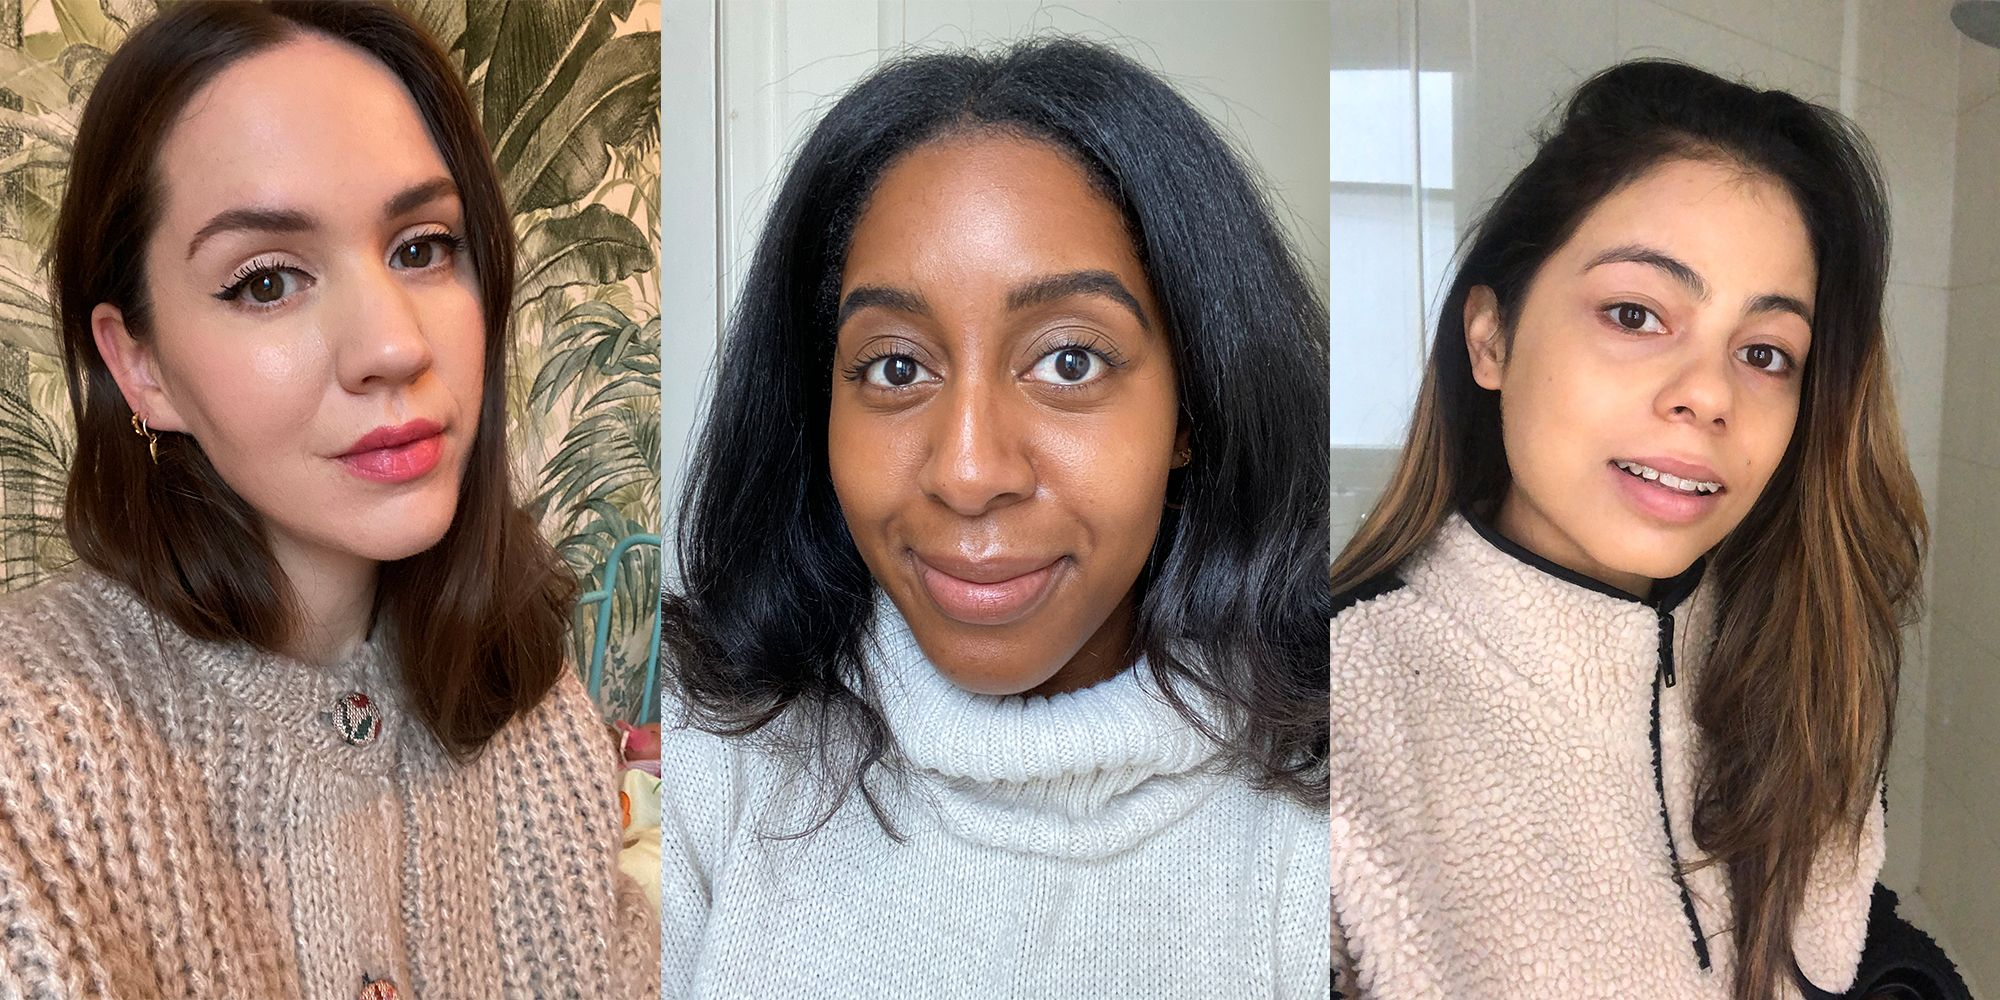 The Ordinary Concealer 3 Women Give Their Honest Review